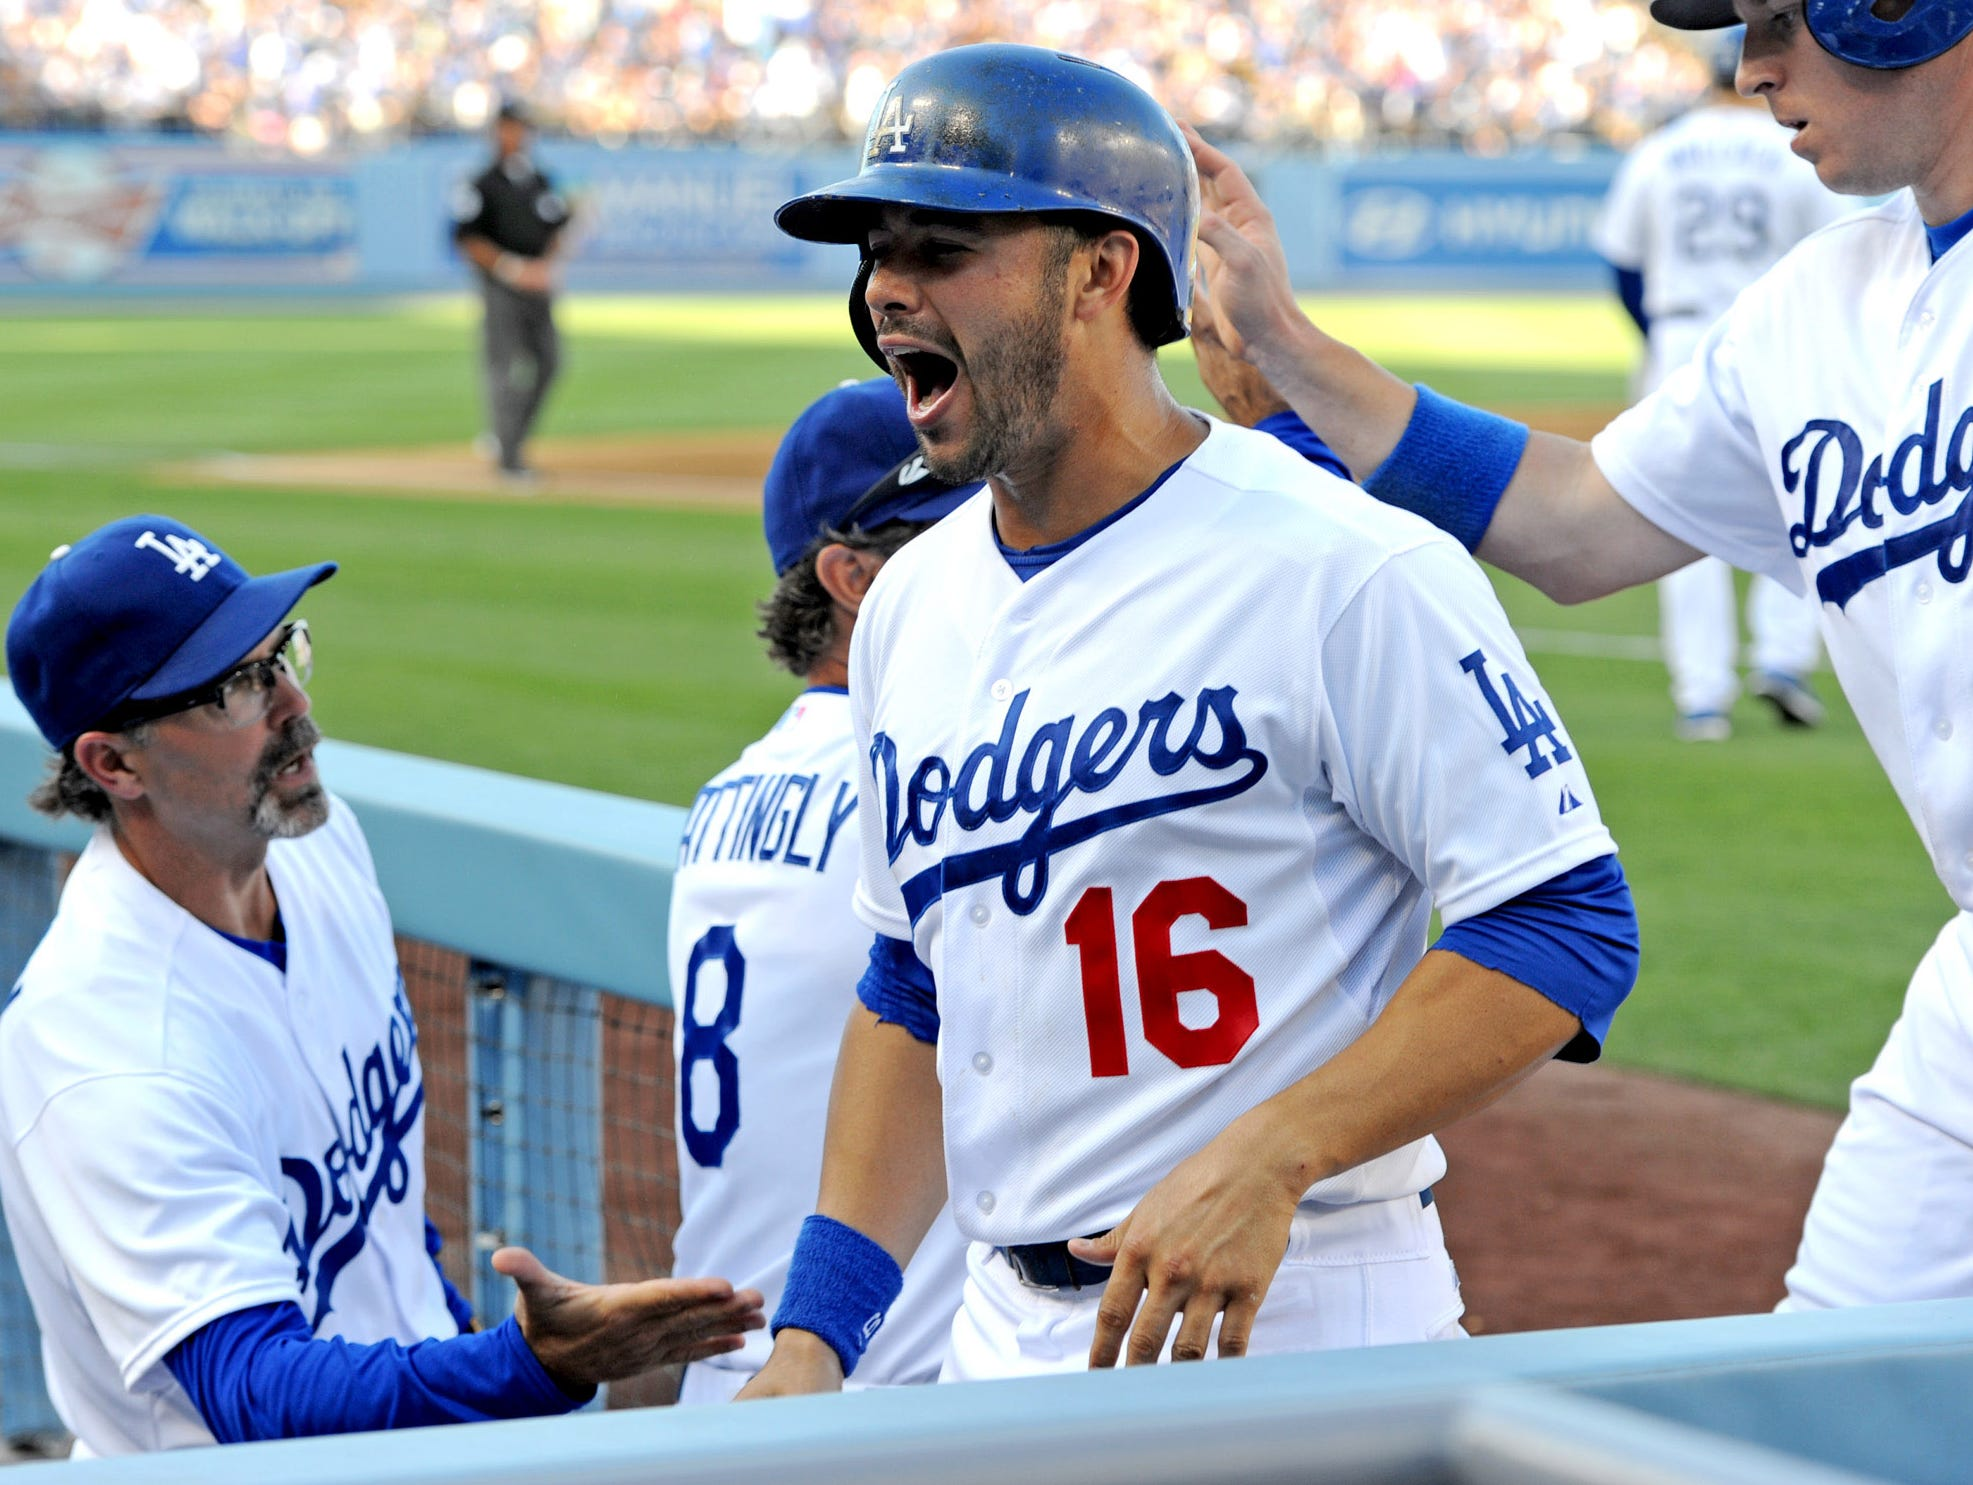 081113-andre-ethier